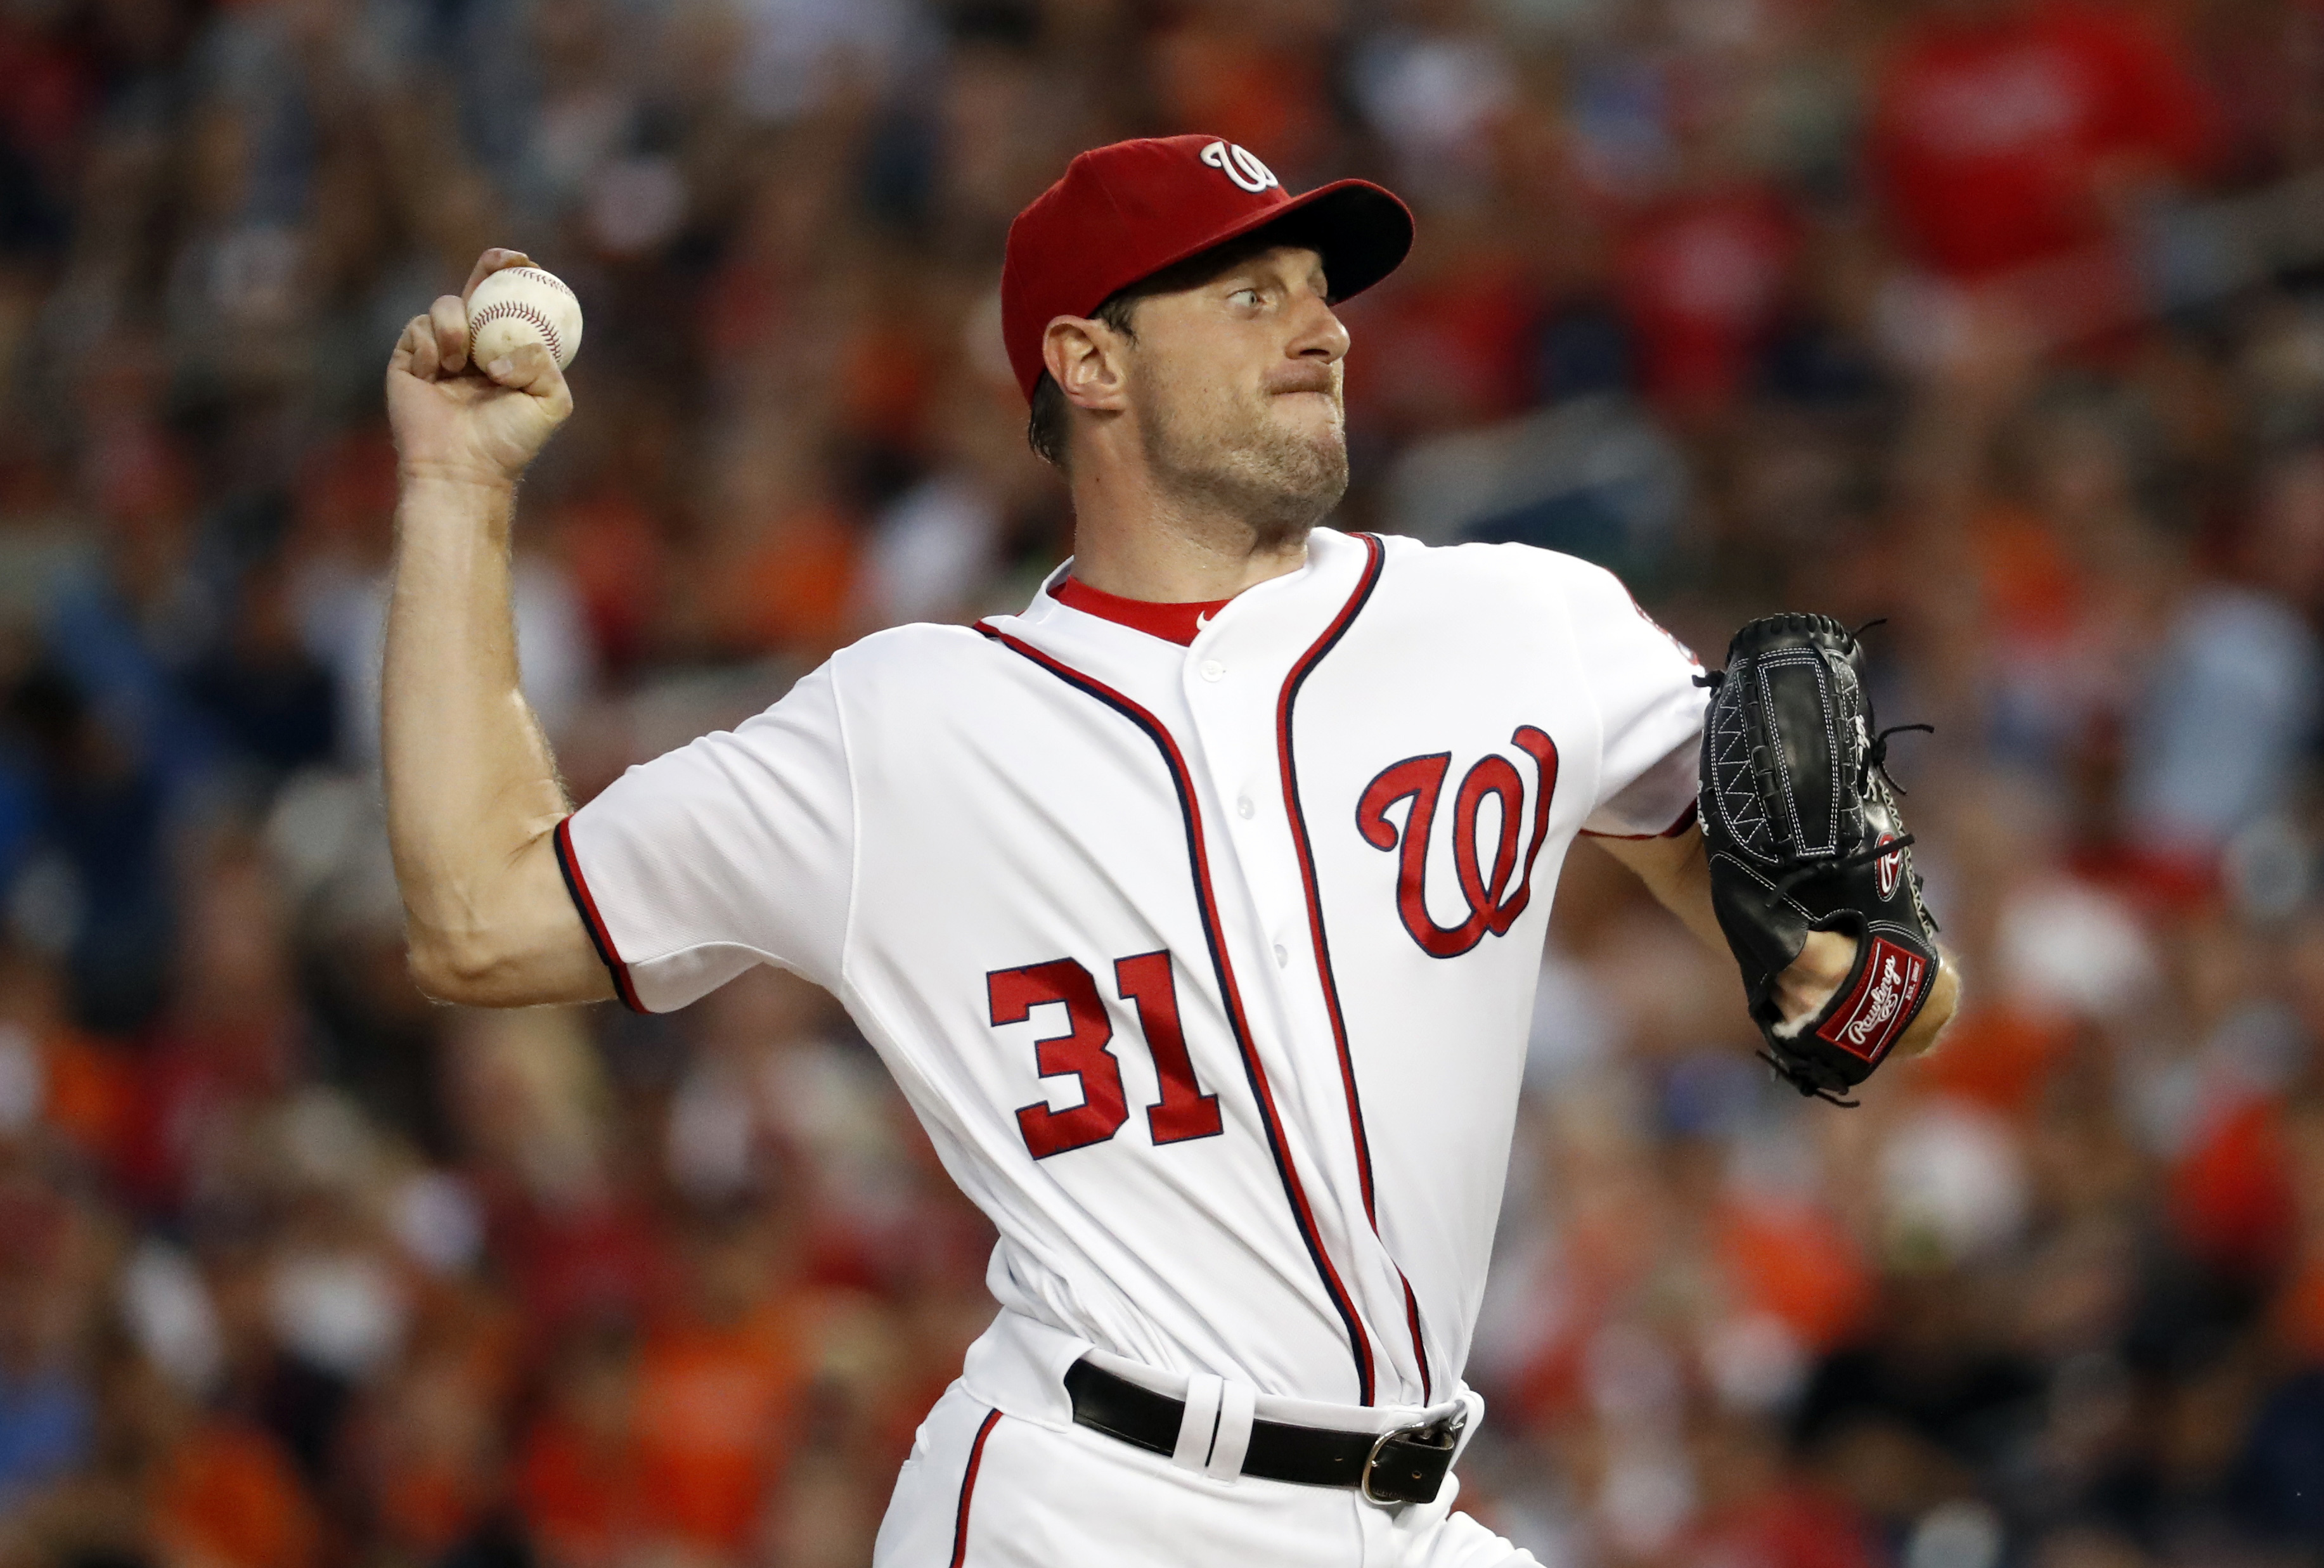 Washington Nationals starting pitcher Max Scherzer throws during the third inning of a baseball game against the Baltimore Orioles at Nationals Park Thursday, Aug. 25, 2016, in Washington. (AP Photo/Alex Brandon)